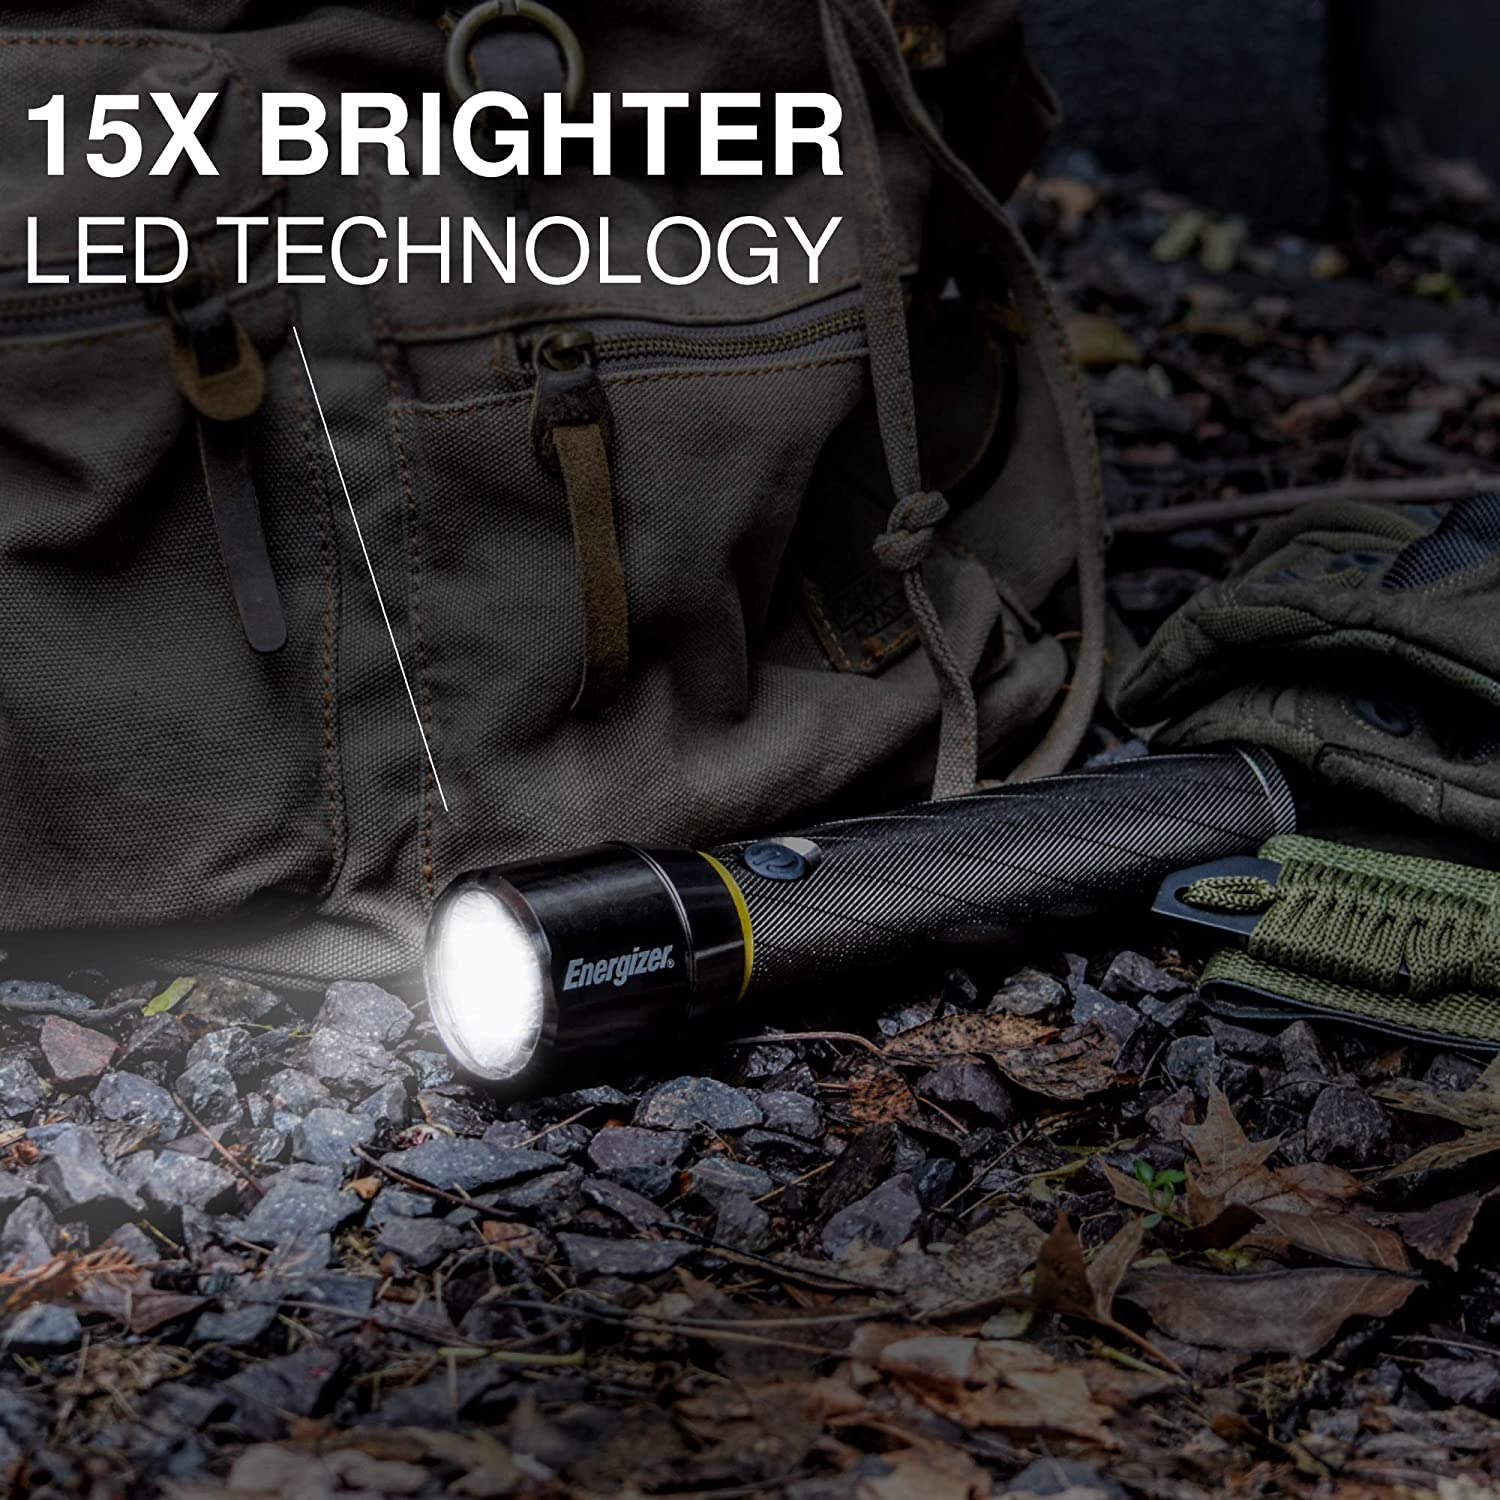 Super Bright Energizer Advanced LED Flashlights Aircraft Grade Metal Tactical Flashlight Batteries Included USB Rechargeable or AA Battery Option IPX4 Water Resistant